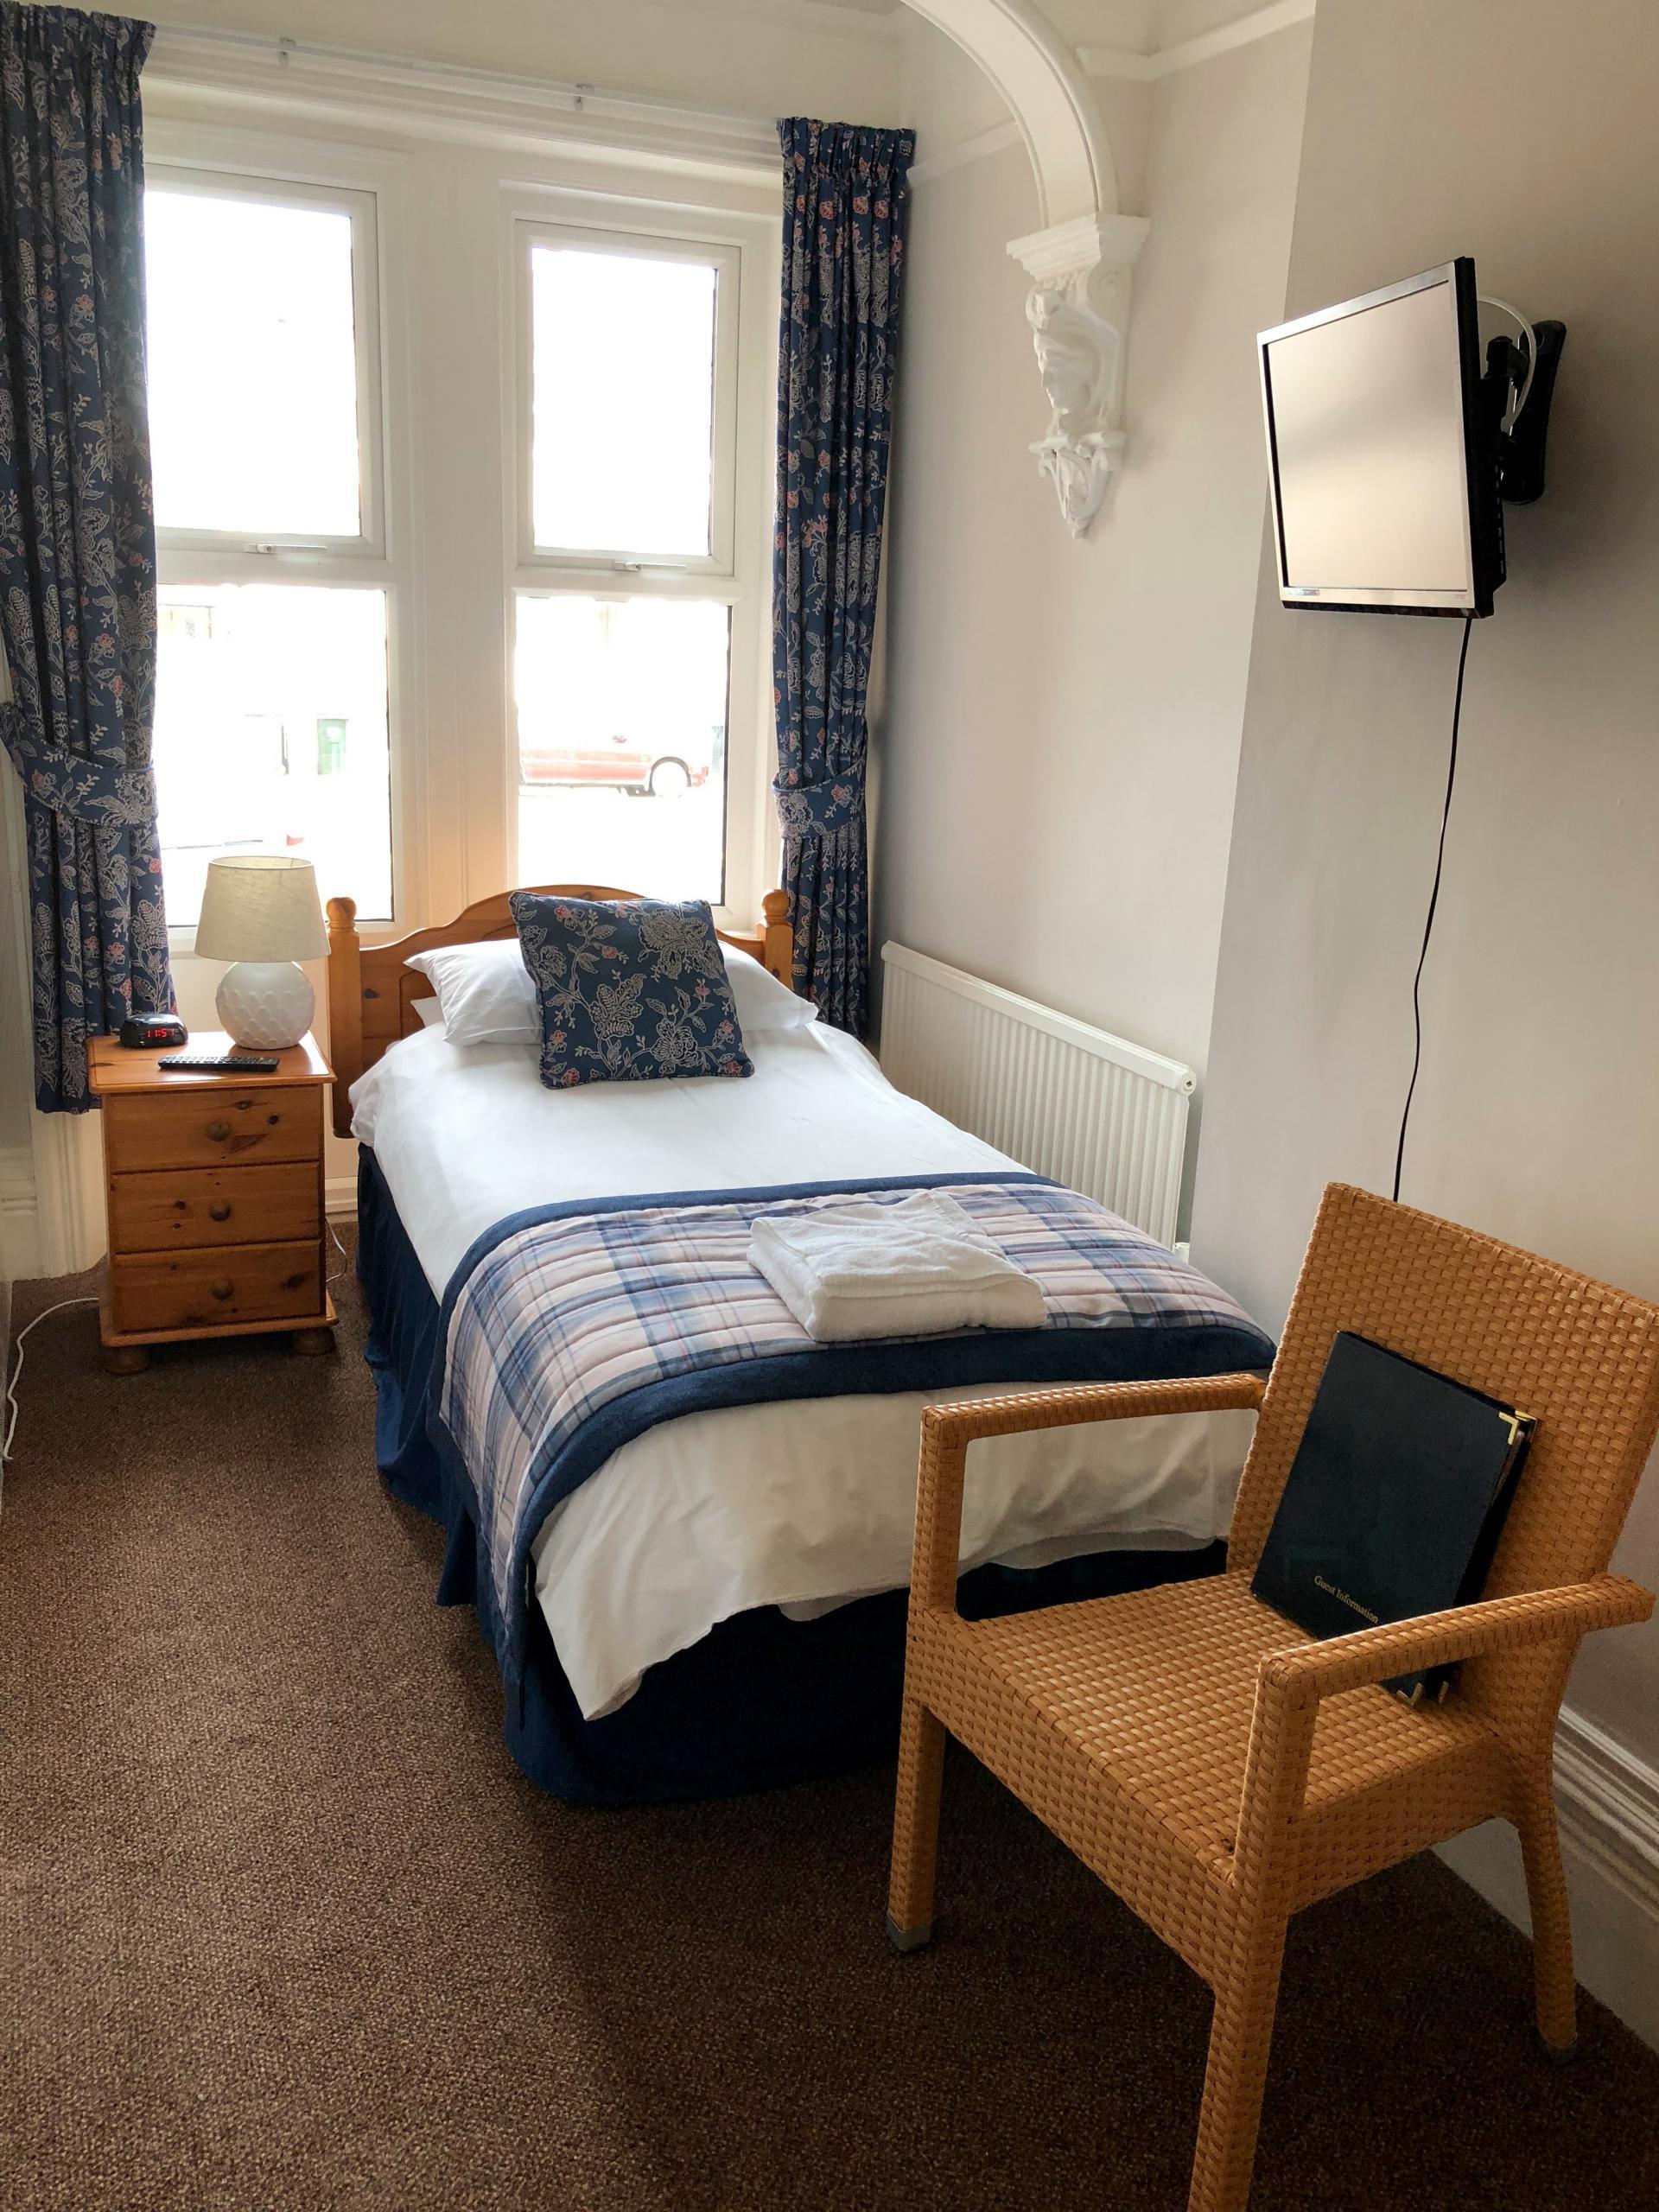 Single En-suite Room ground floor (inc. Breakfast)